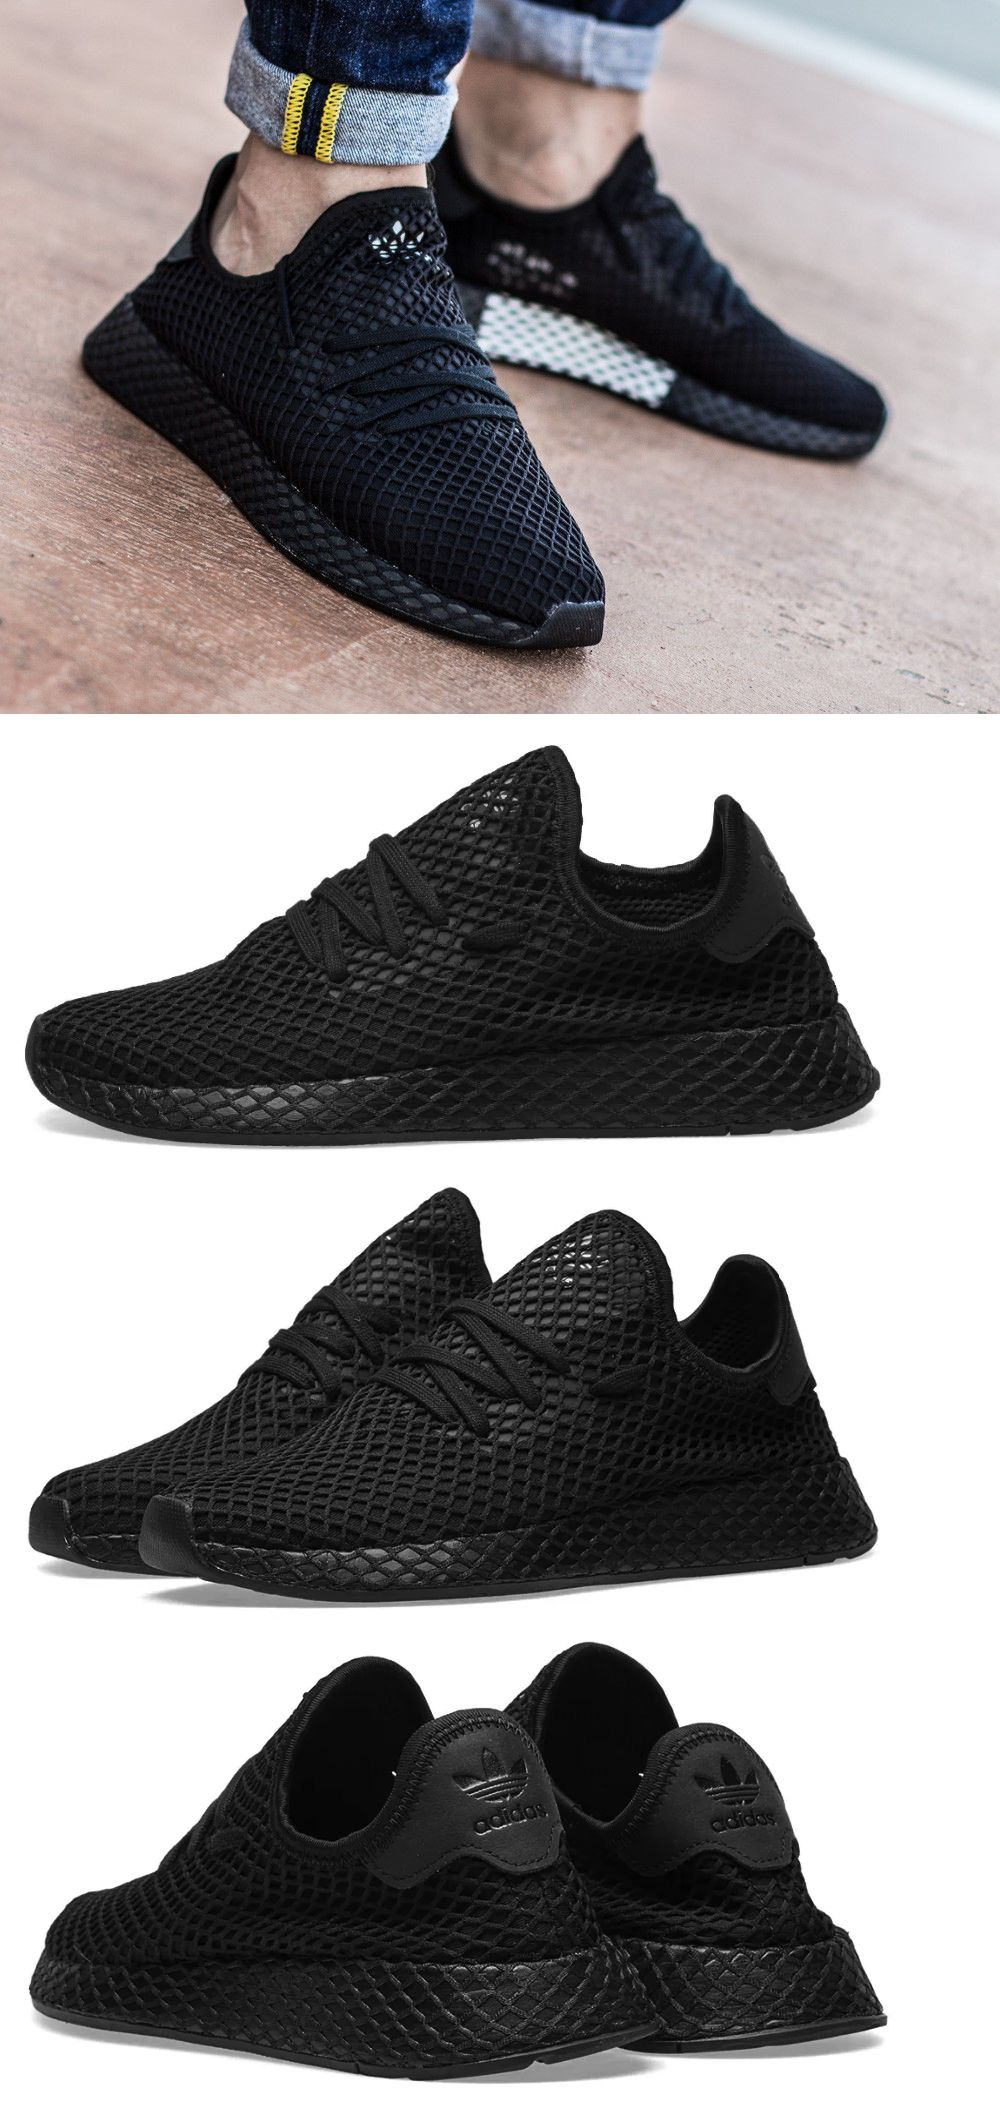 ff119c02aec795 Athletic Shoes 15709  New Adidas Originals Deerupt Runner Sneaker Mens  Triple Black White All Sz -  BUY IT NOW ONLY   69.99 on  eBay  athletic   shoes ...